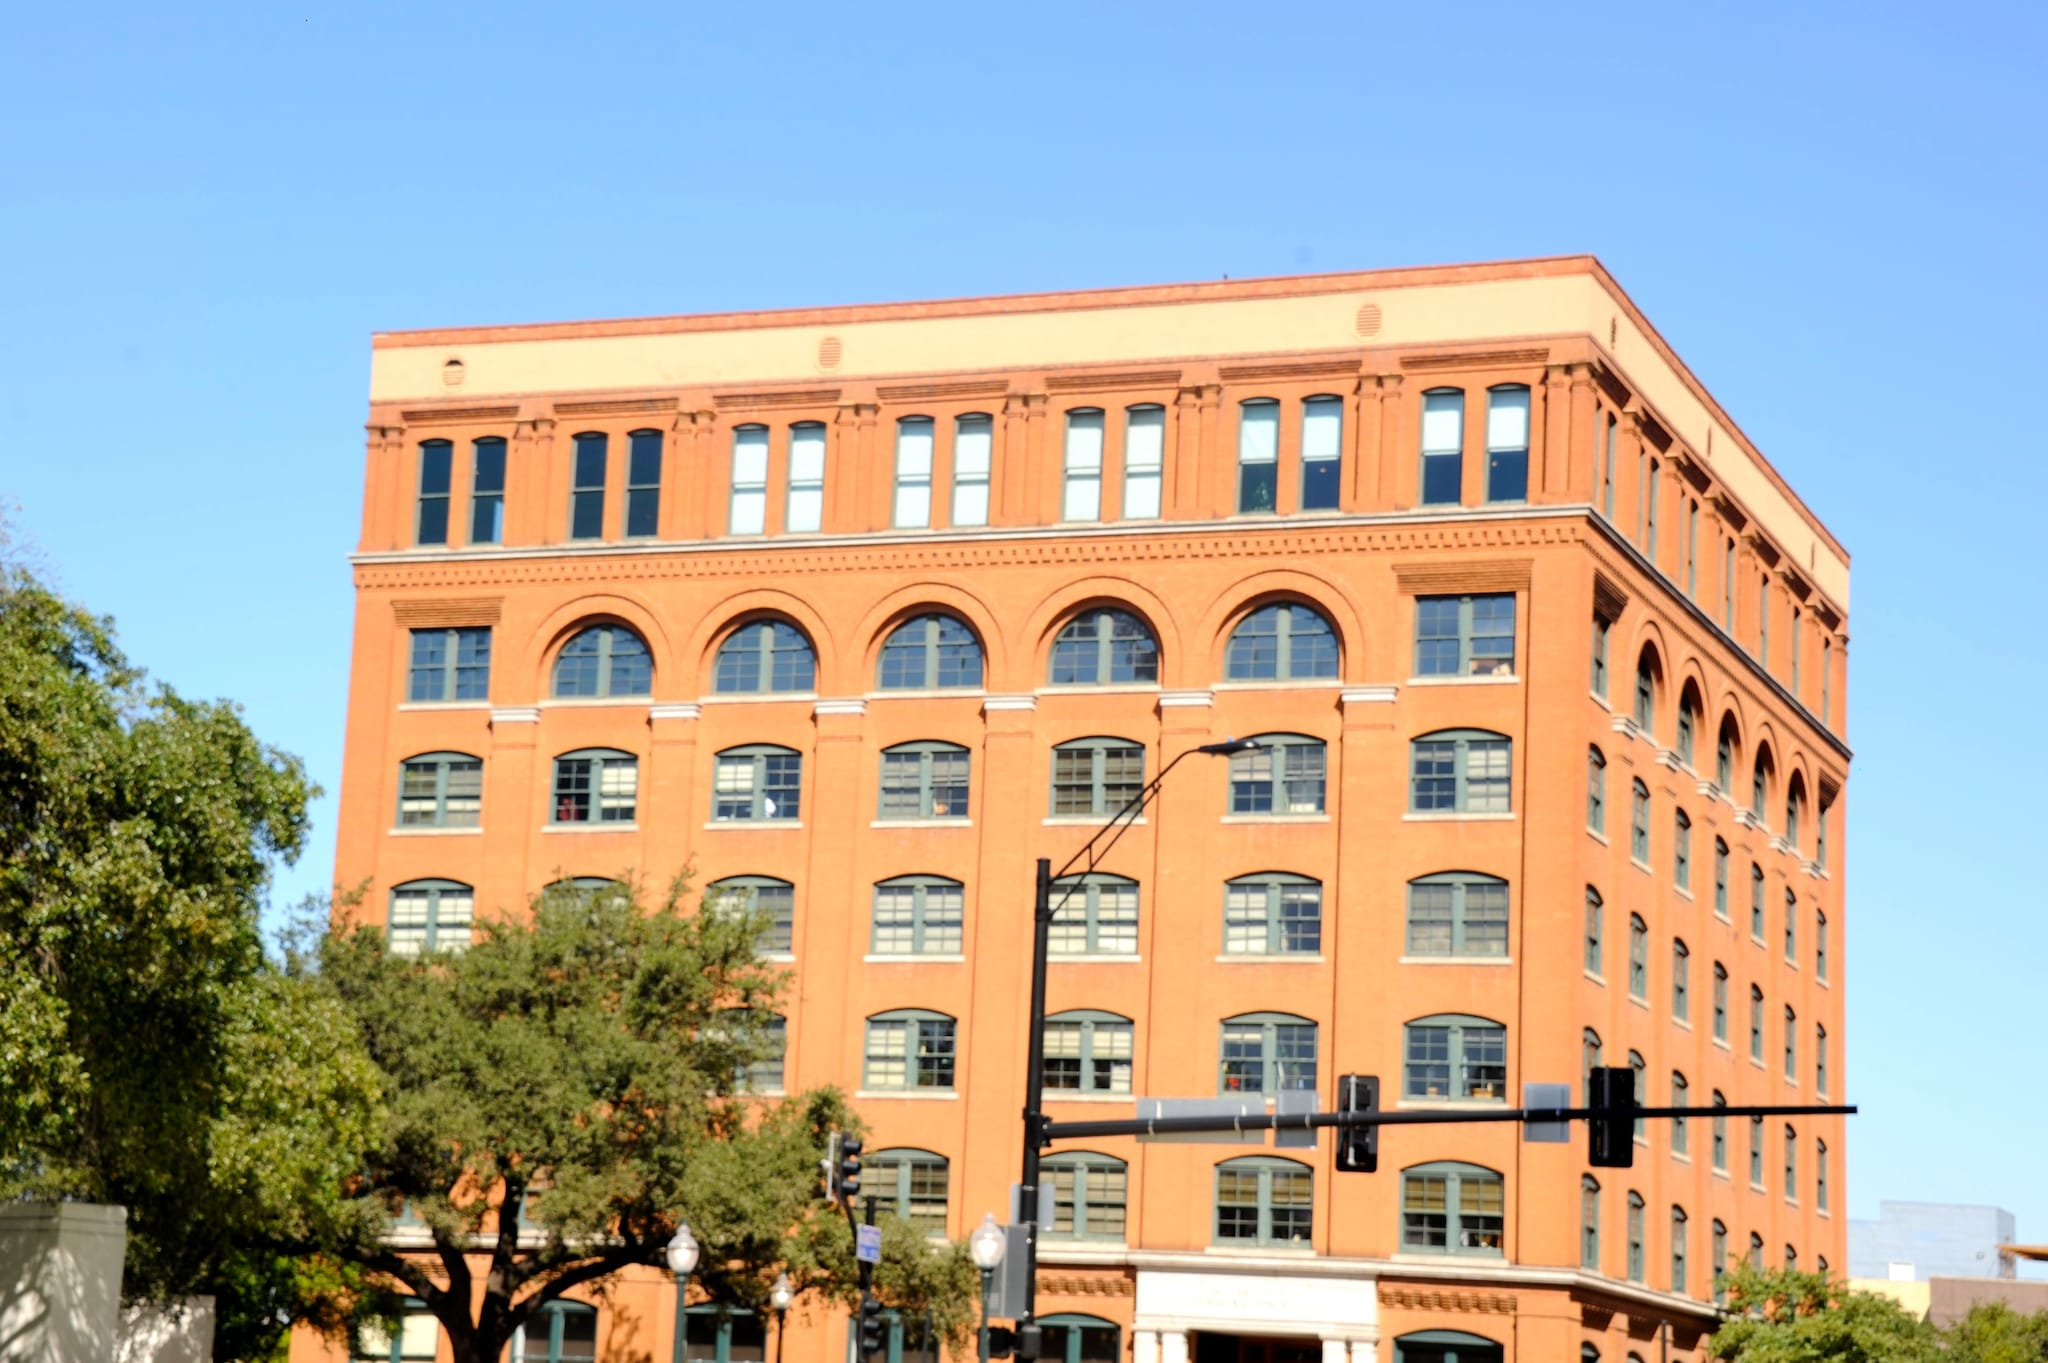 The Assassin's hideout in Dallas, Texas: It was in 1898 that the Southern Rock Island Plow Company built a 5-story building at the northwest corner of Houston and Elm streets in Dallas. Many years later, within minutes of the assassination of JFK, the building (later Texas School Book Depository) became the primary crime scene for the shooting after evidence of a sniper was found on the sixth floor. A Depository employee, Lee Harvey Oswald, was arrested for the murder of a Dallas police officer within 80 minutes of the assassination and later charged with the assassination of the president. Photographed here is the building which is now The Sixth Floor Museum. <strong>(Photo courtesy: Preeti Verma Lal)</strong>